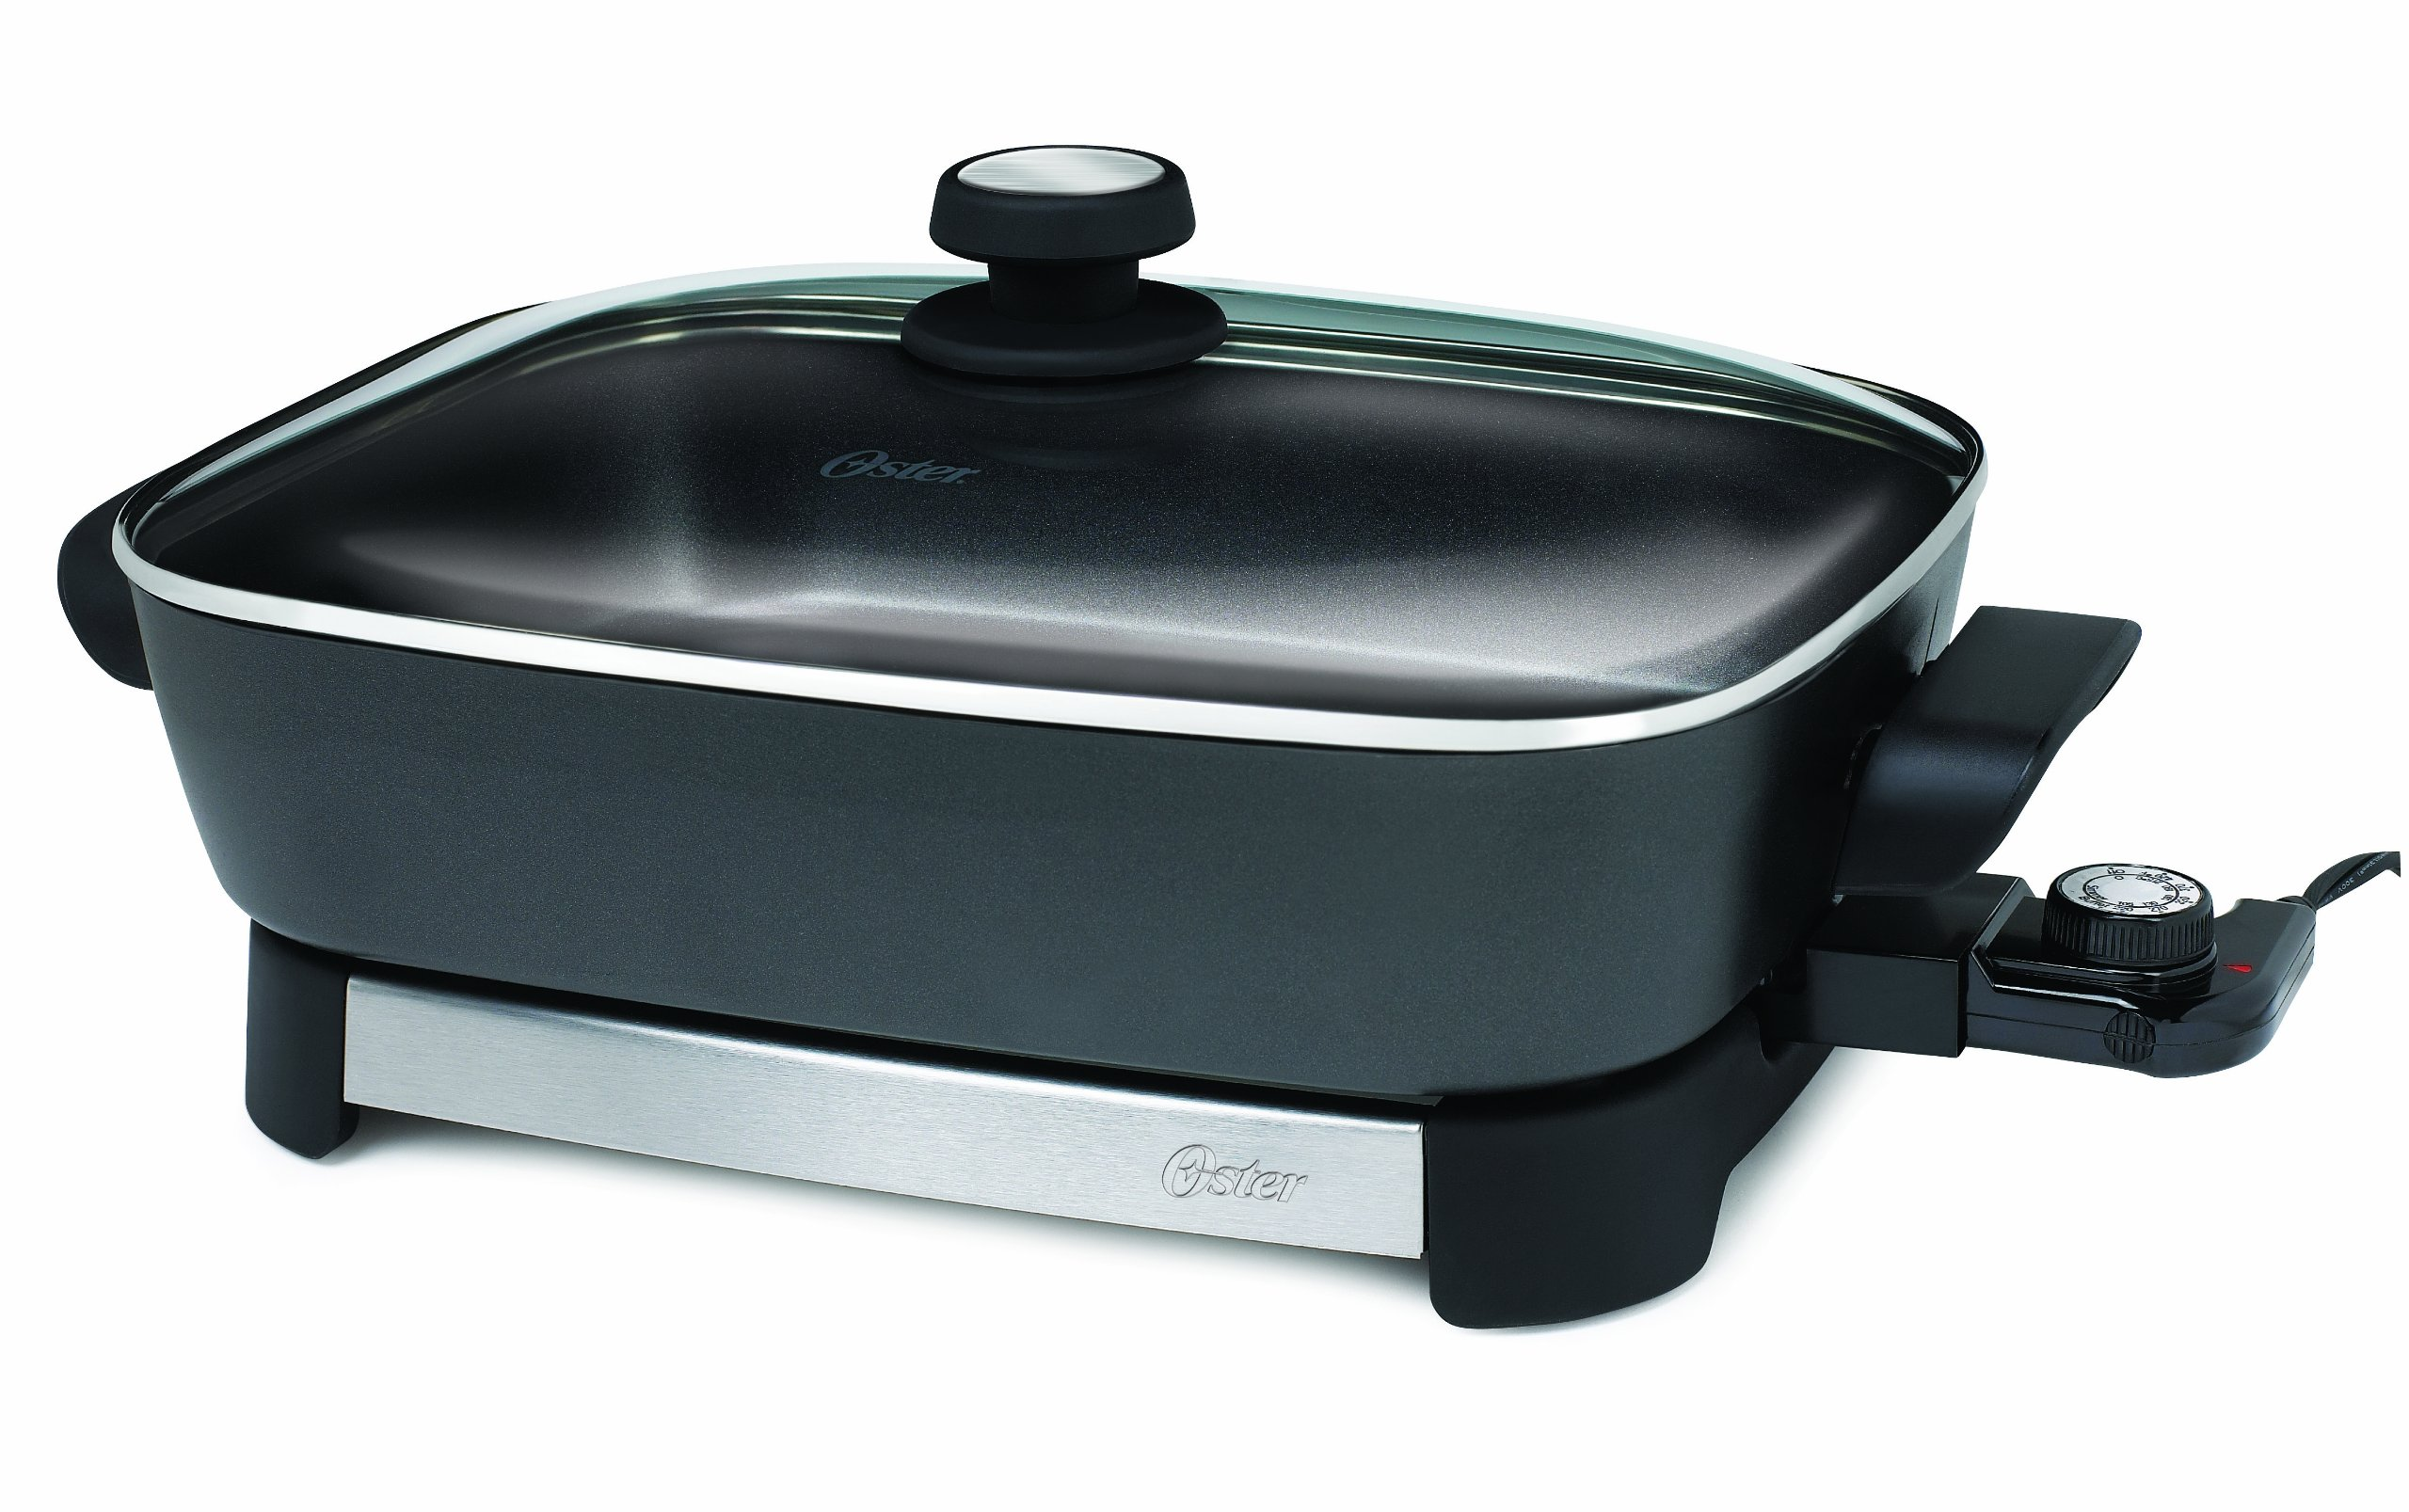 Electric Skillet 16 Inch Non Stick Surface Stainless Steel